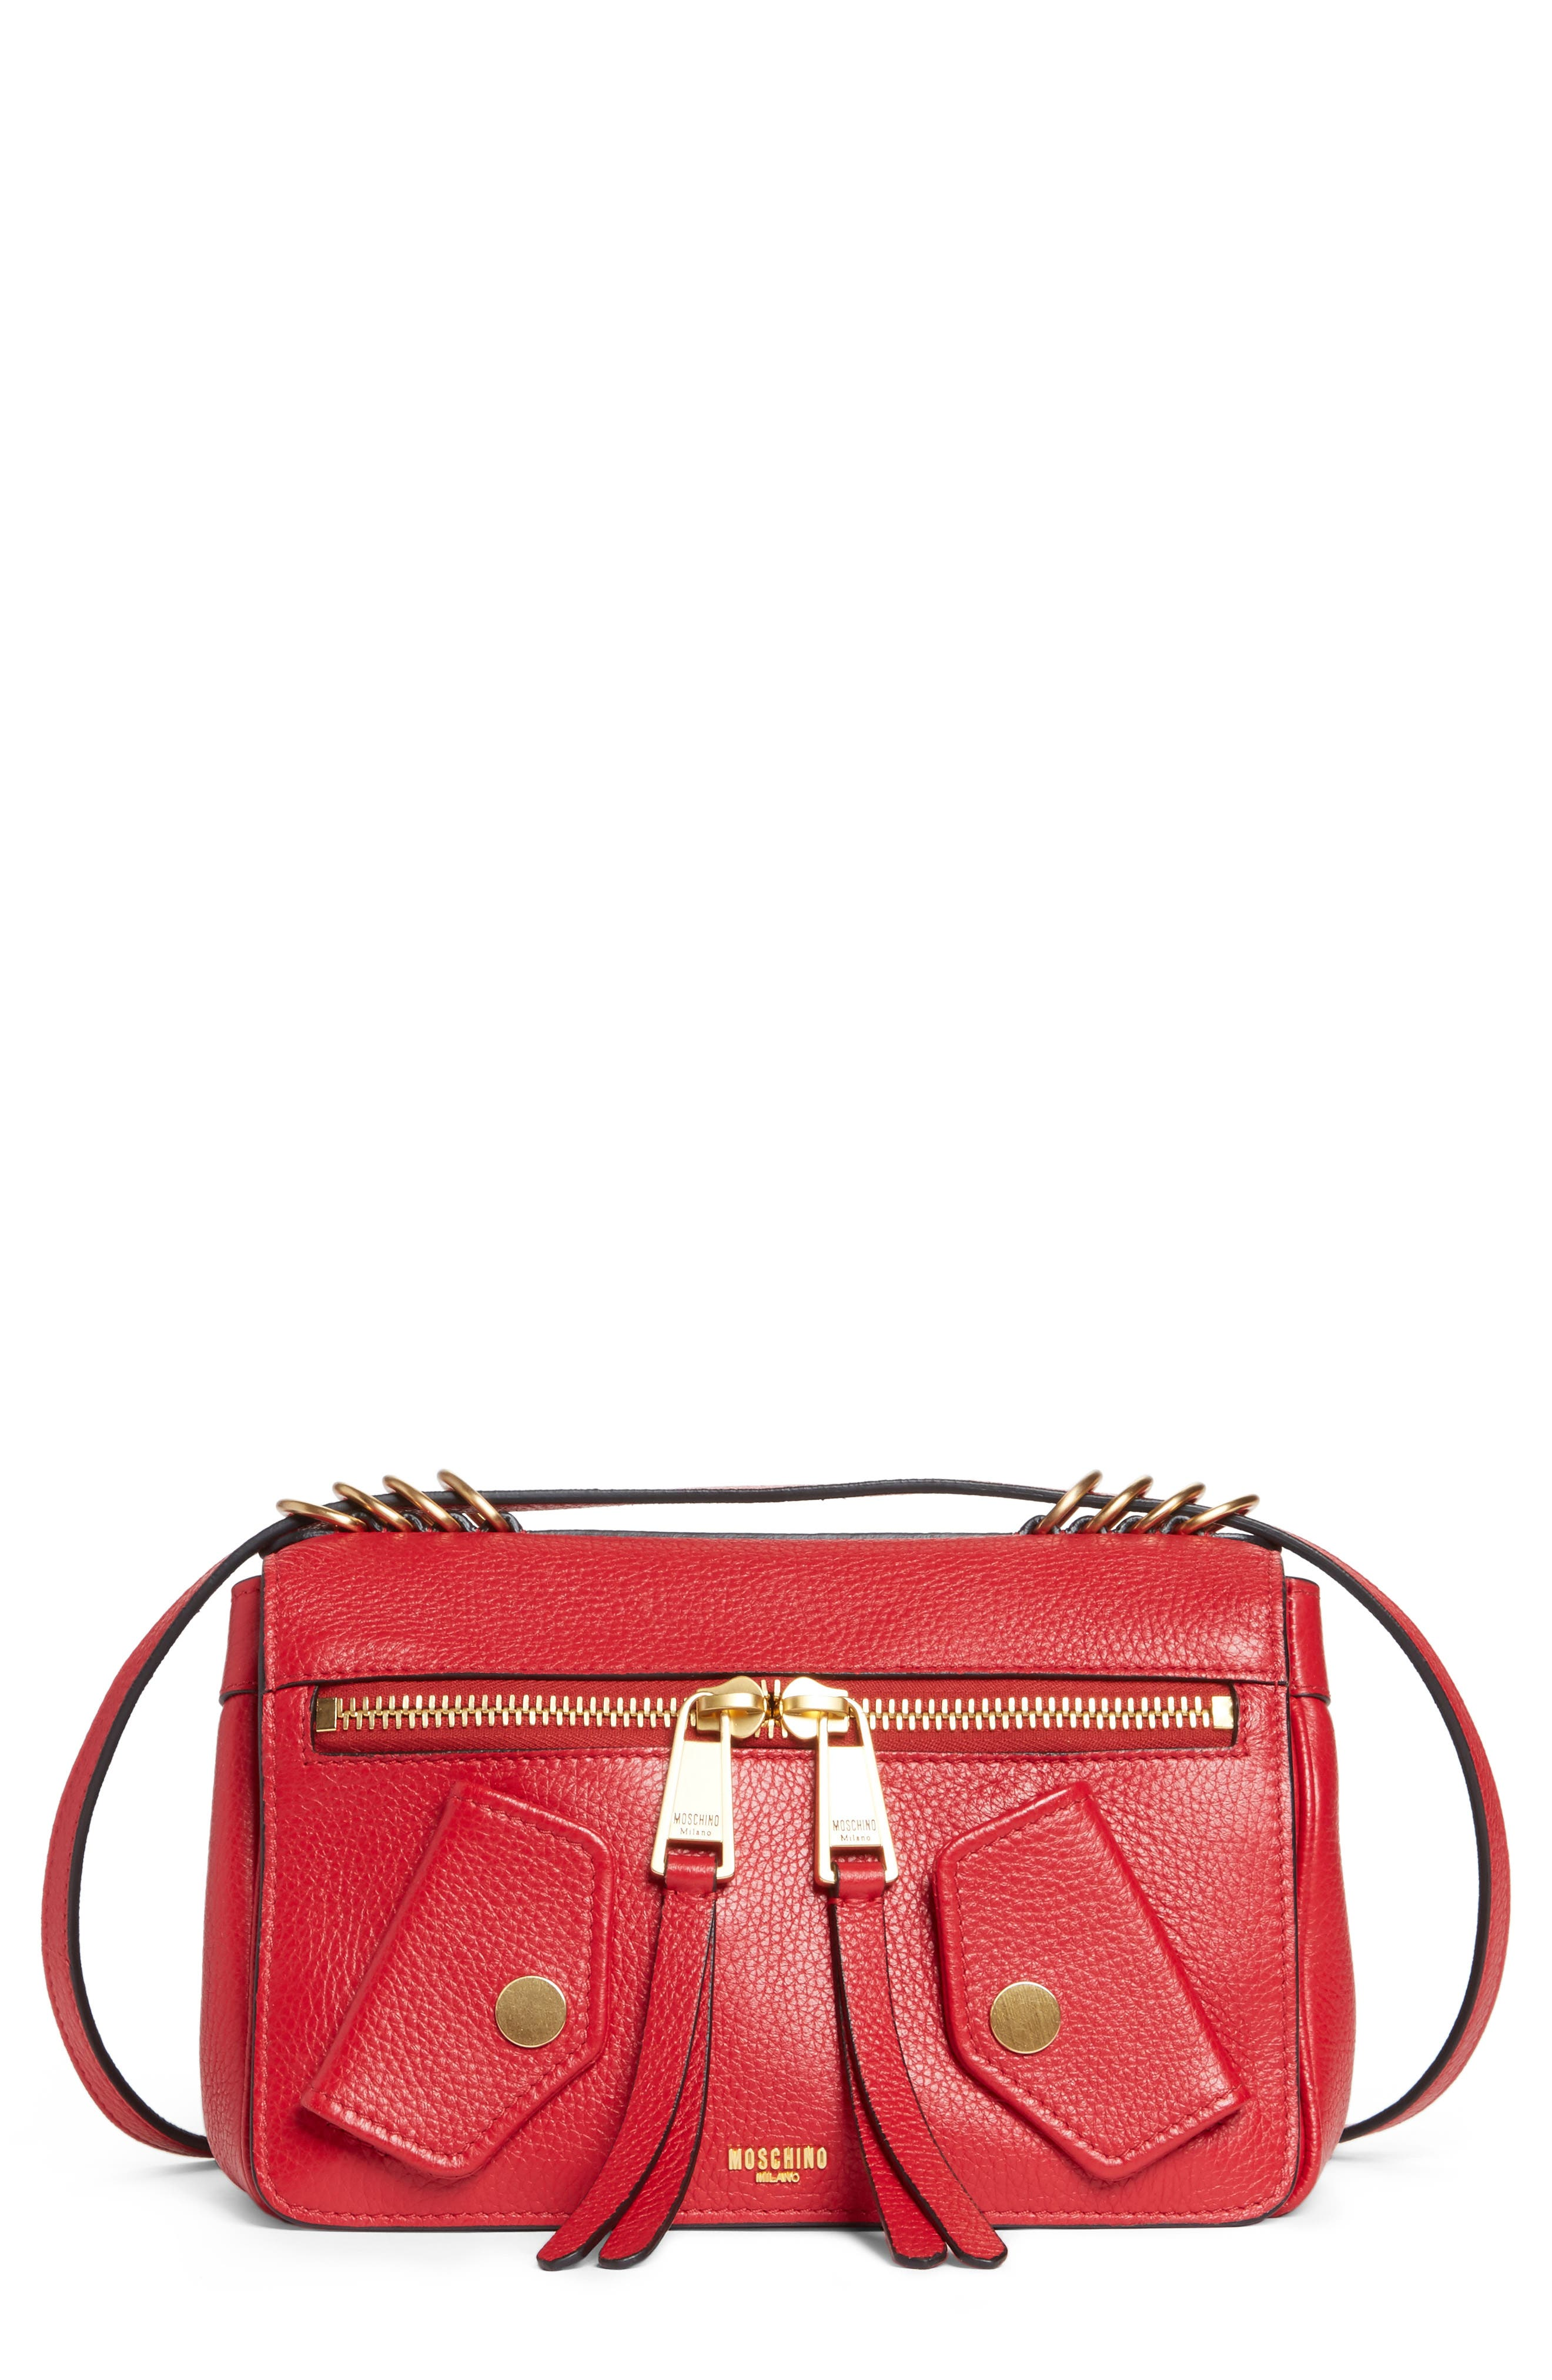 Grainy-B Leather Crossbody Bag,                         Main,                         color, Red